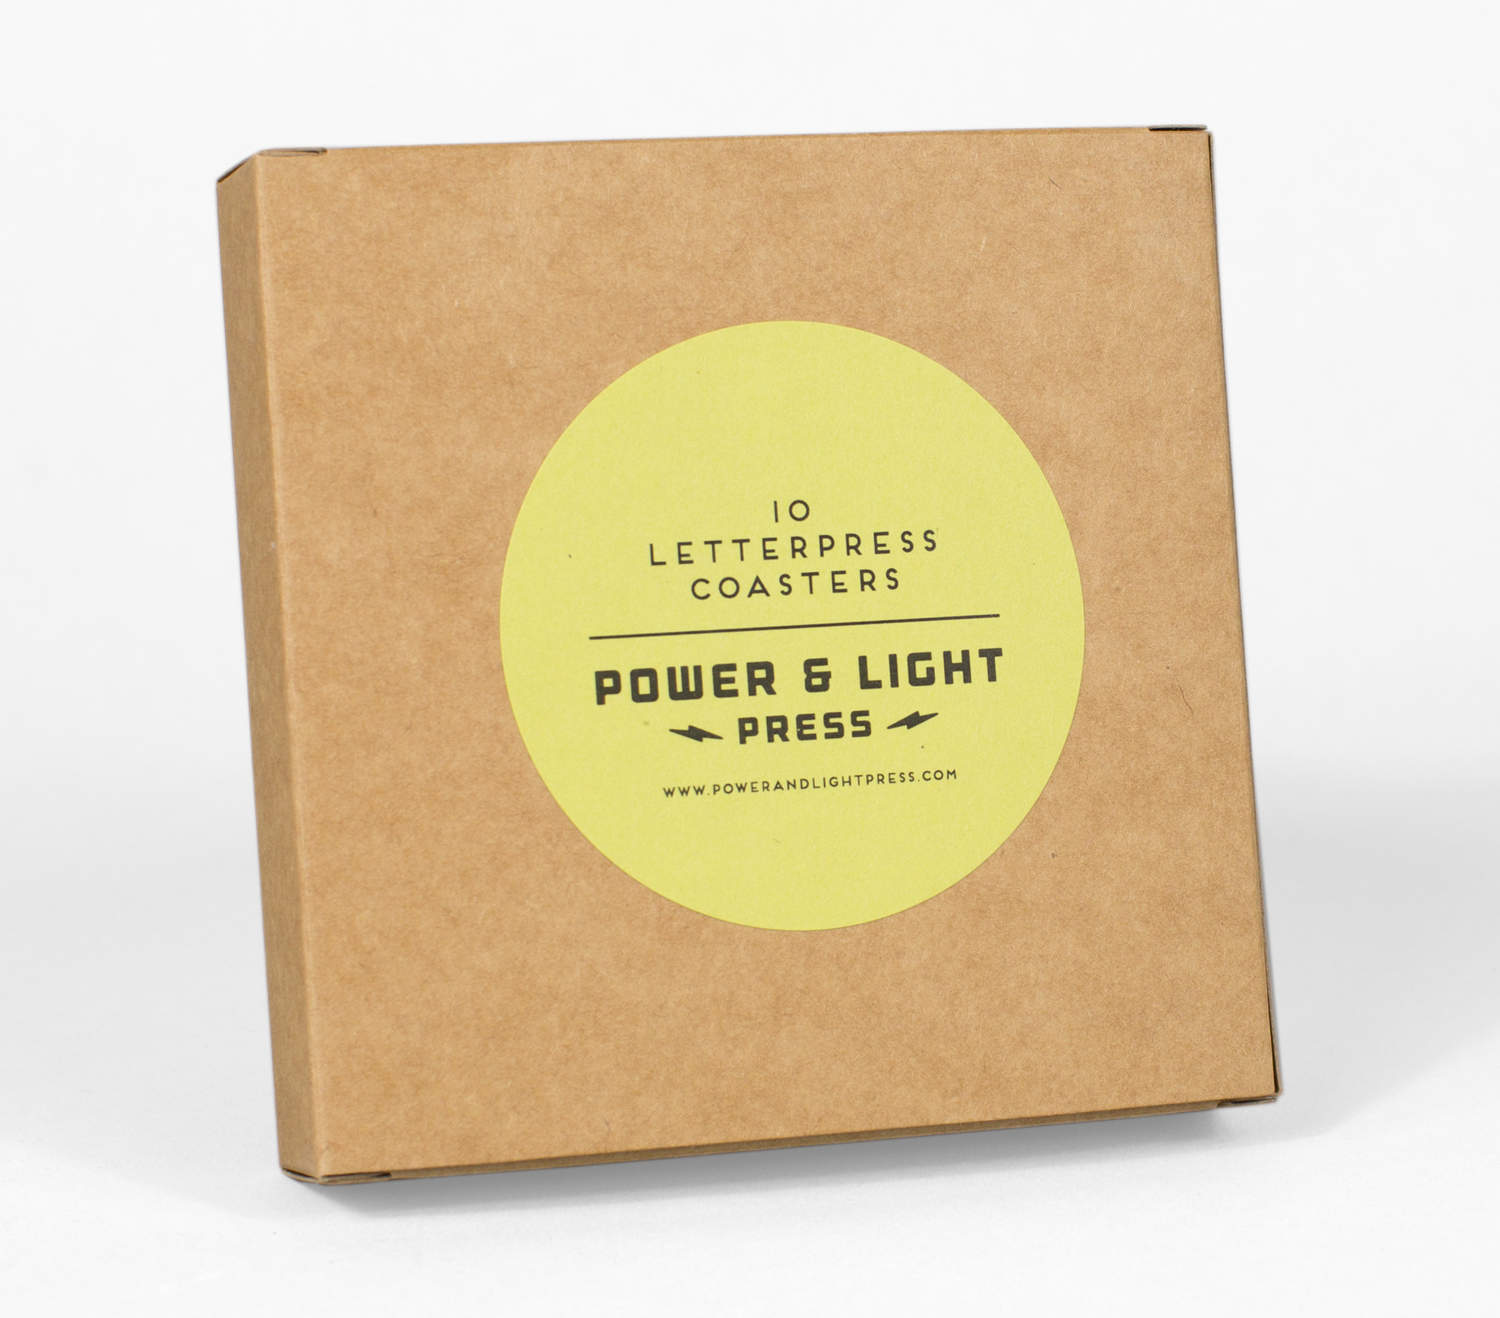 power and light press  drinks are on me at buyolympiacom - power and light press drinks are on me coasters